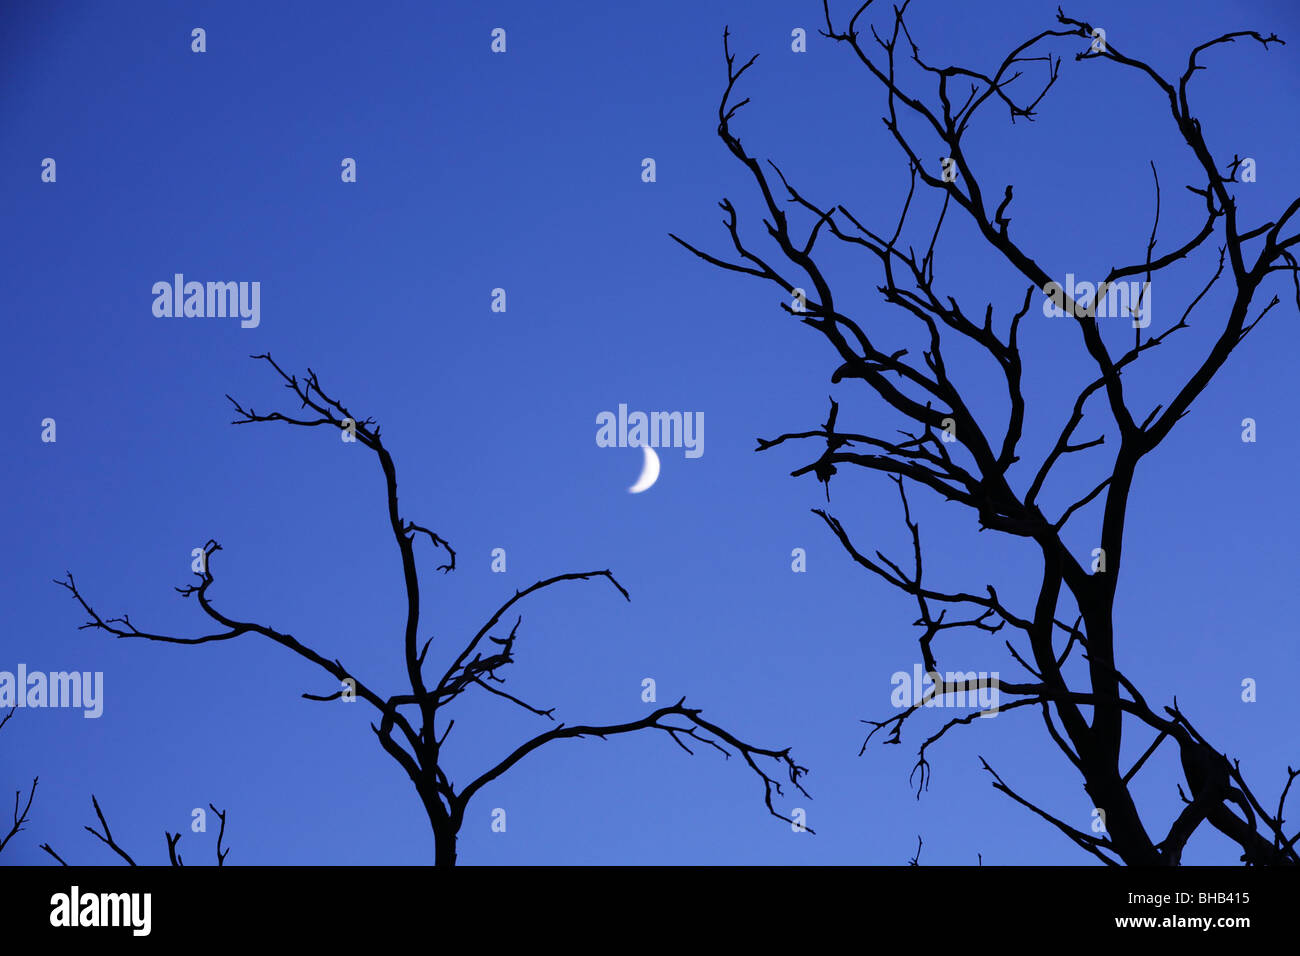 Silhouetted bare trees with new moon in dusk sky - Stock Image